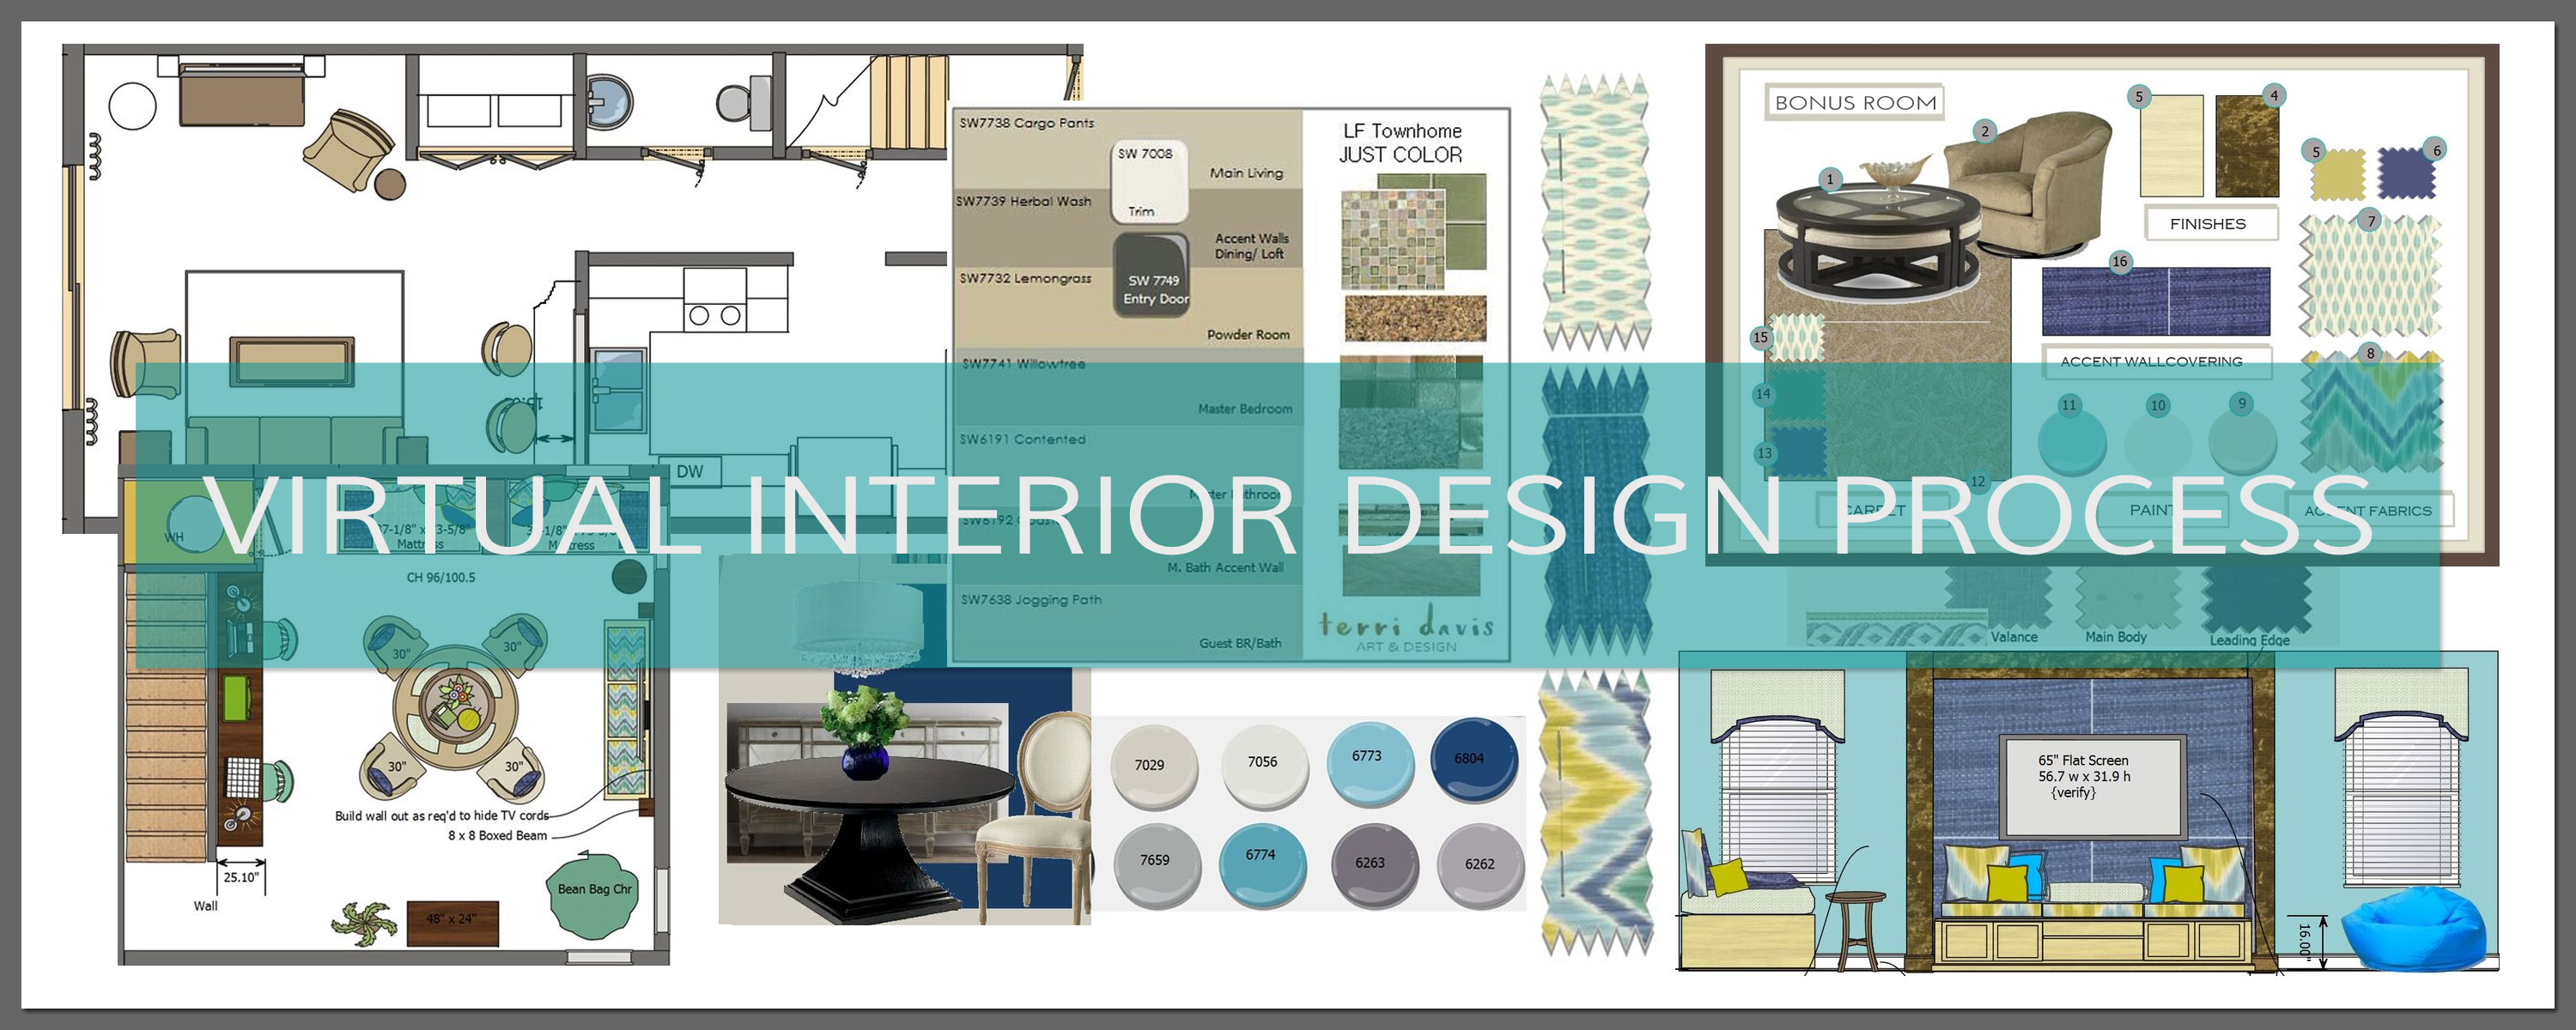 Virtual interior design process terri davis art design for Interior design process